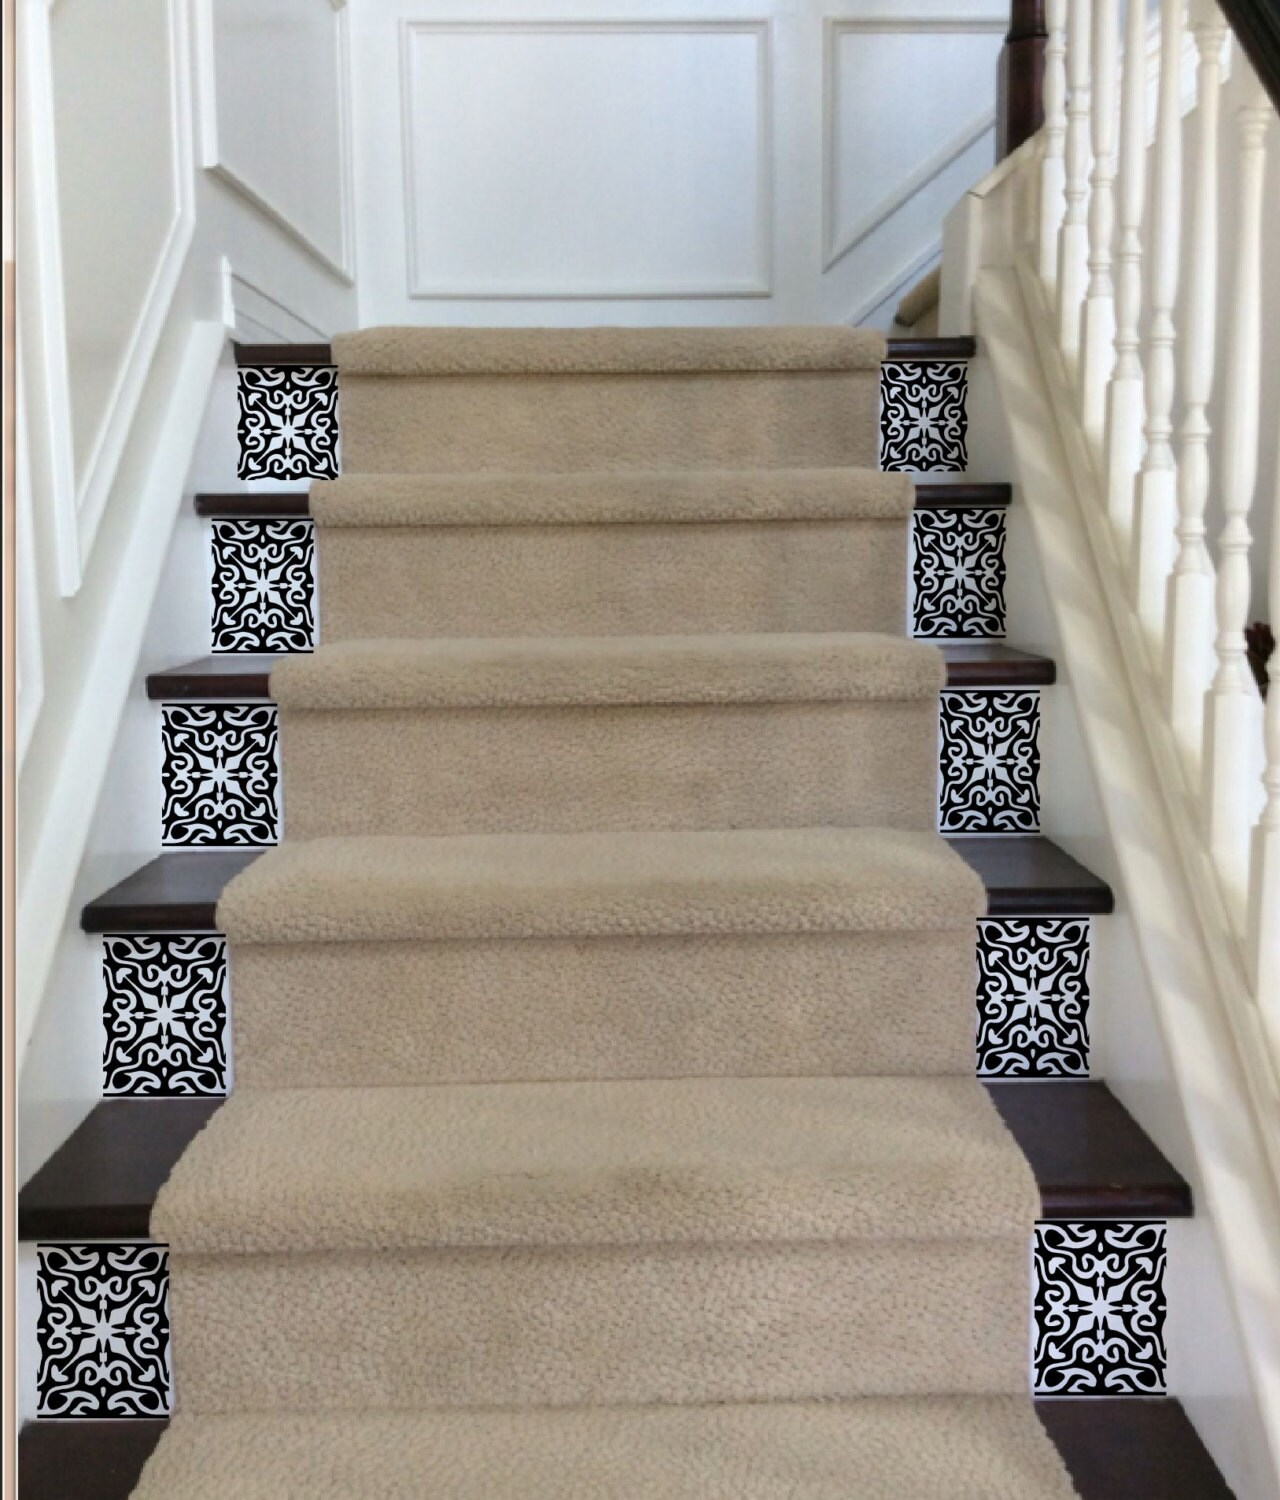 ornate vinyl tile decals for carpeted stairs decals for. Black Bedroom Furniture Sets. Home Design Ideas